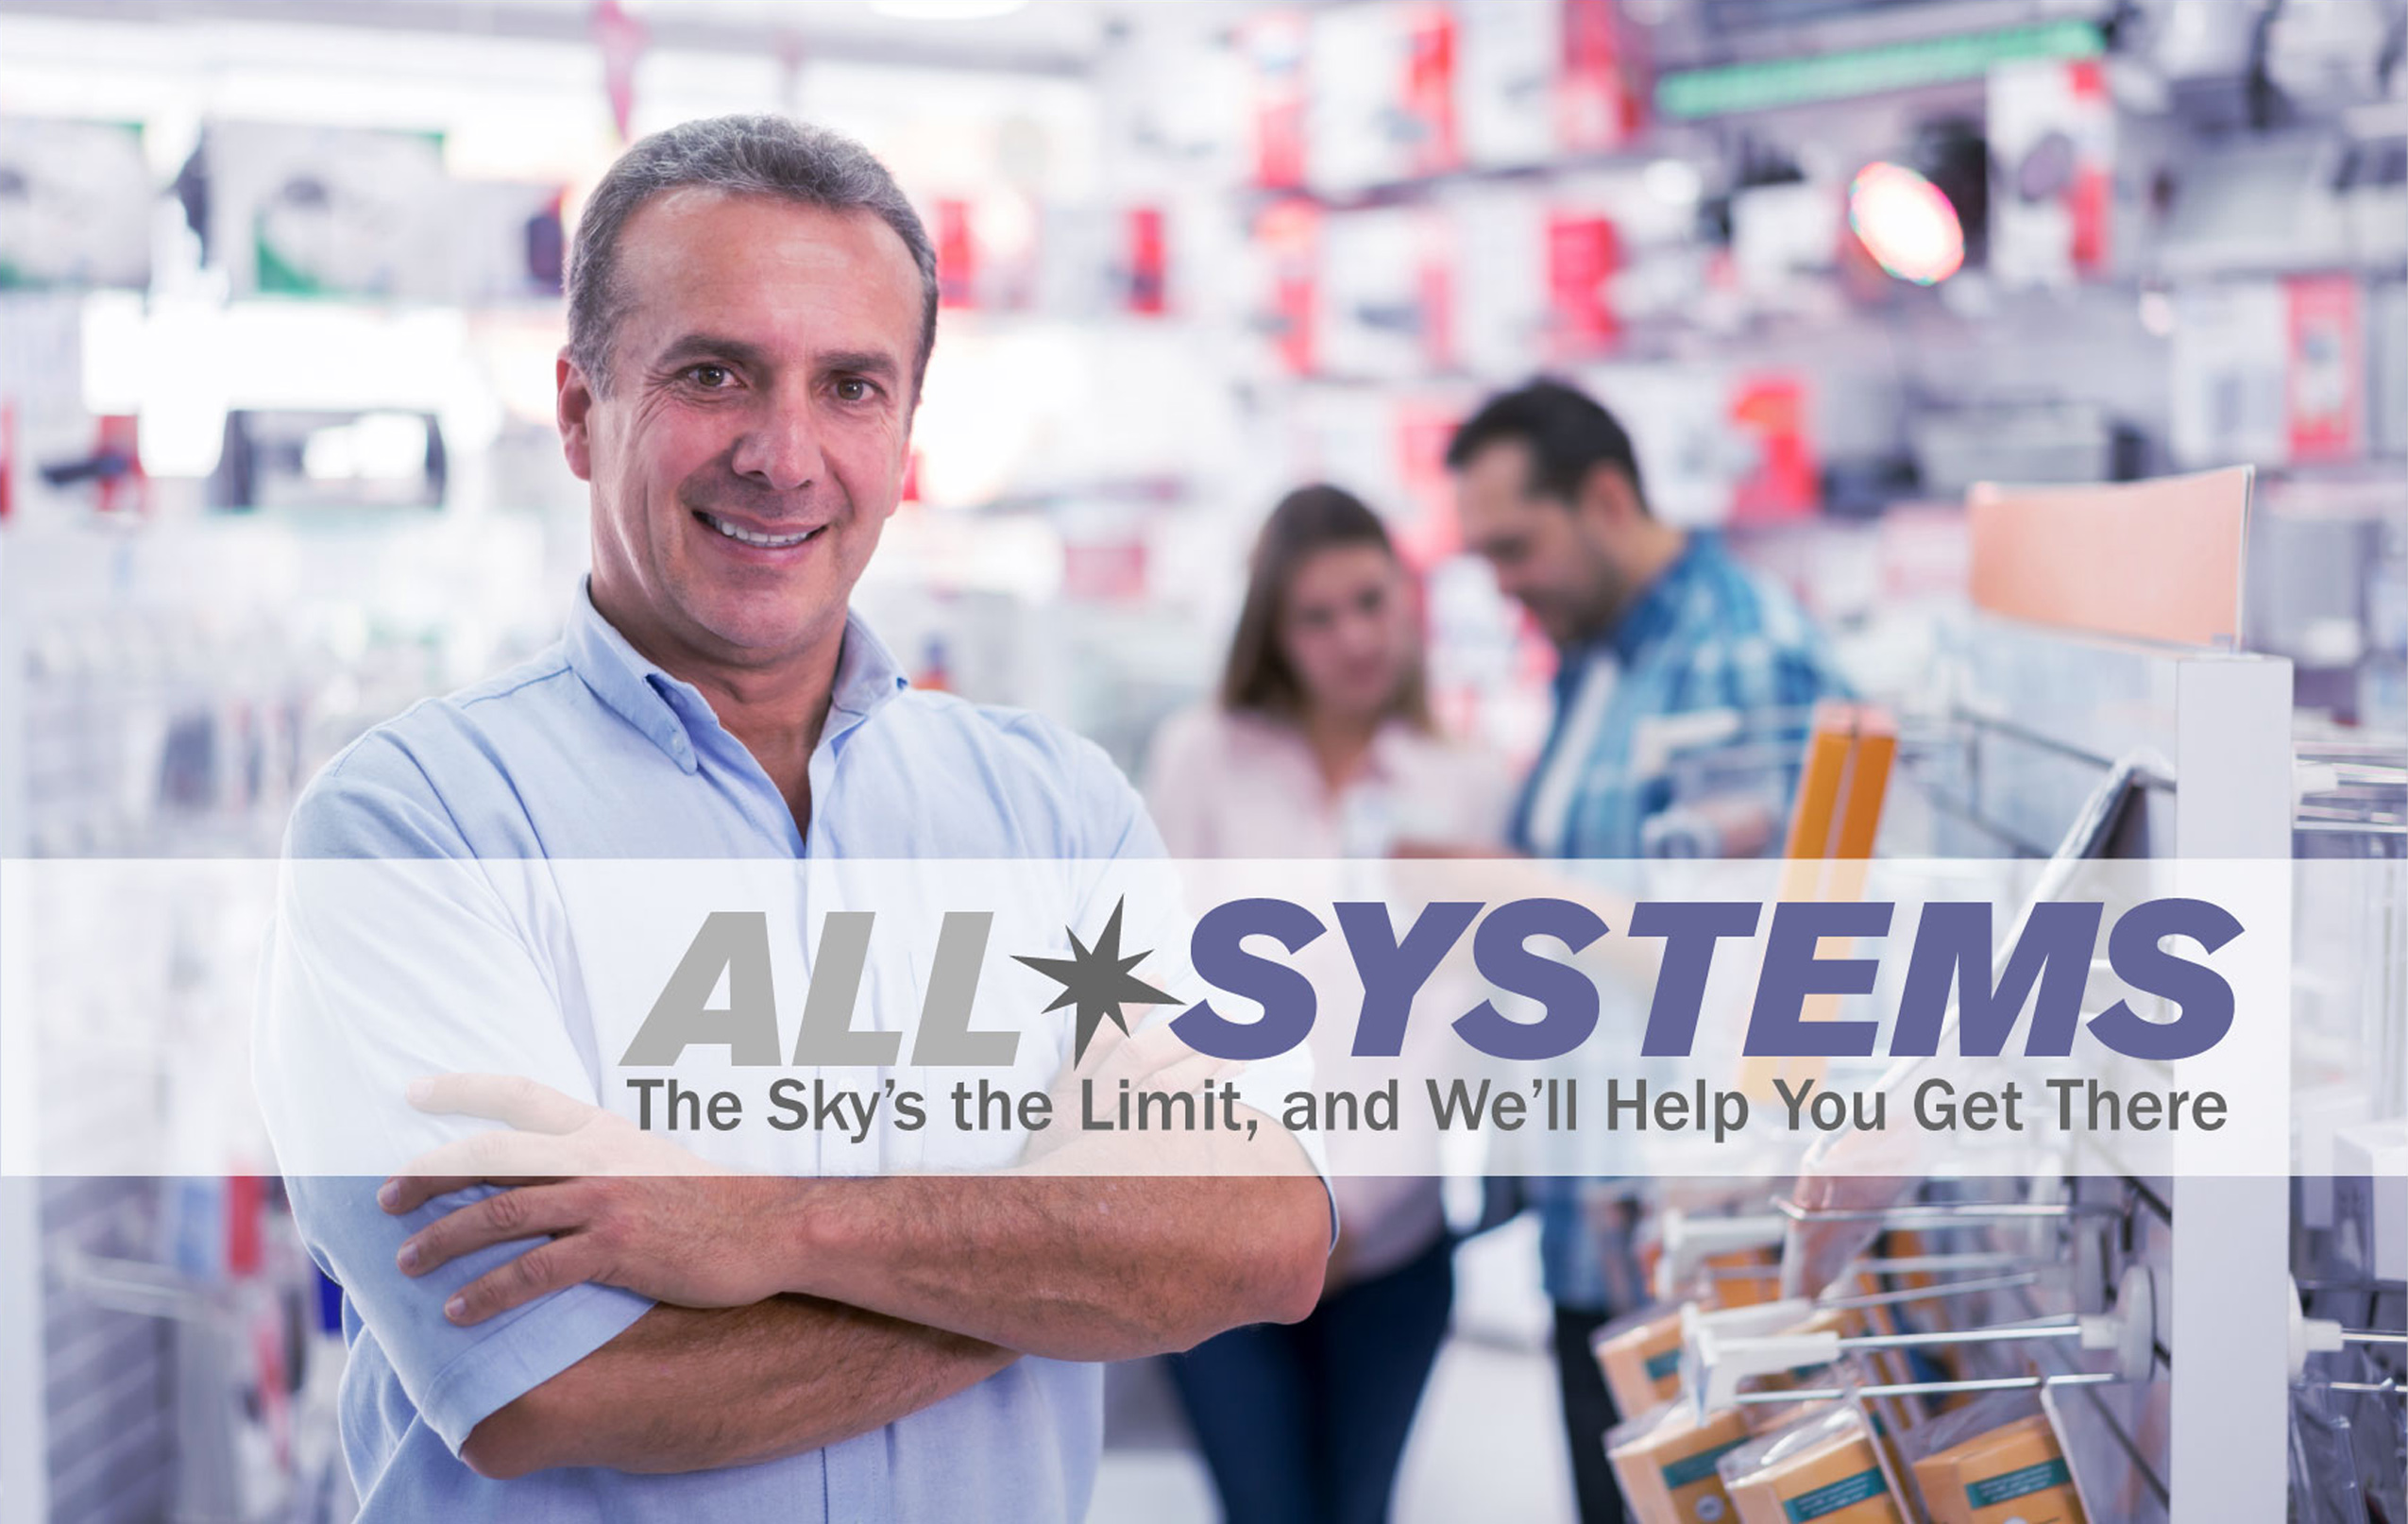 Become a retailer with All-Systems and represent products like DISH, HughesNET, Spyclops, RingCentral and more.